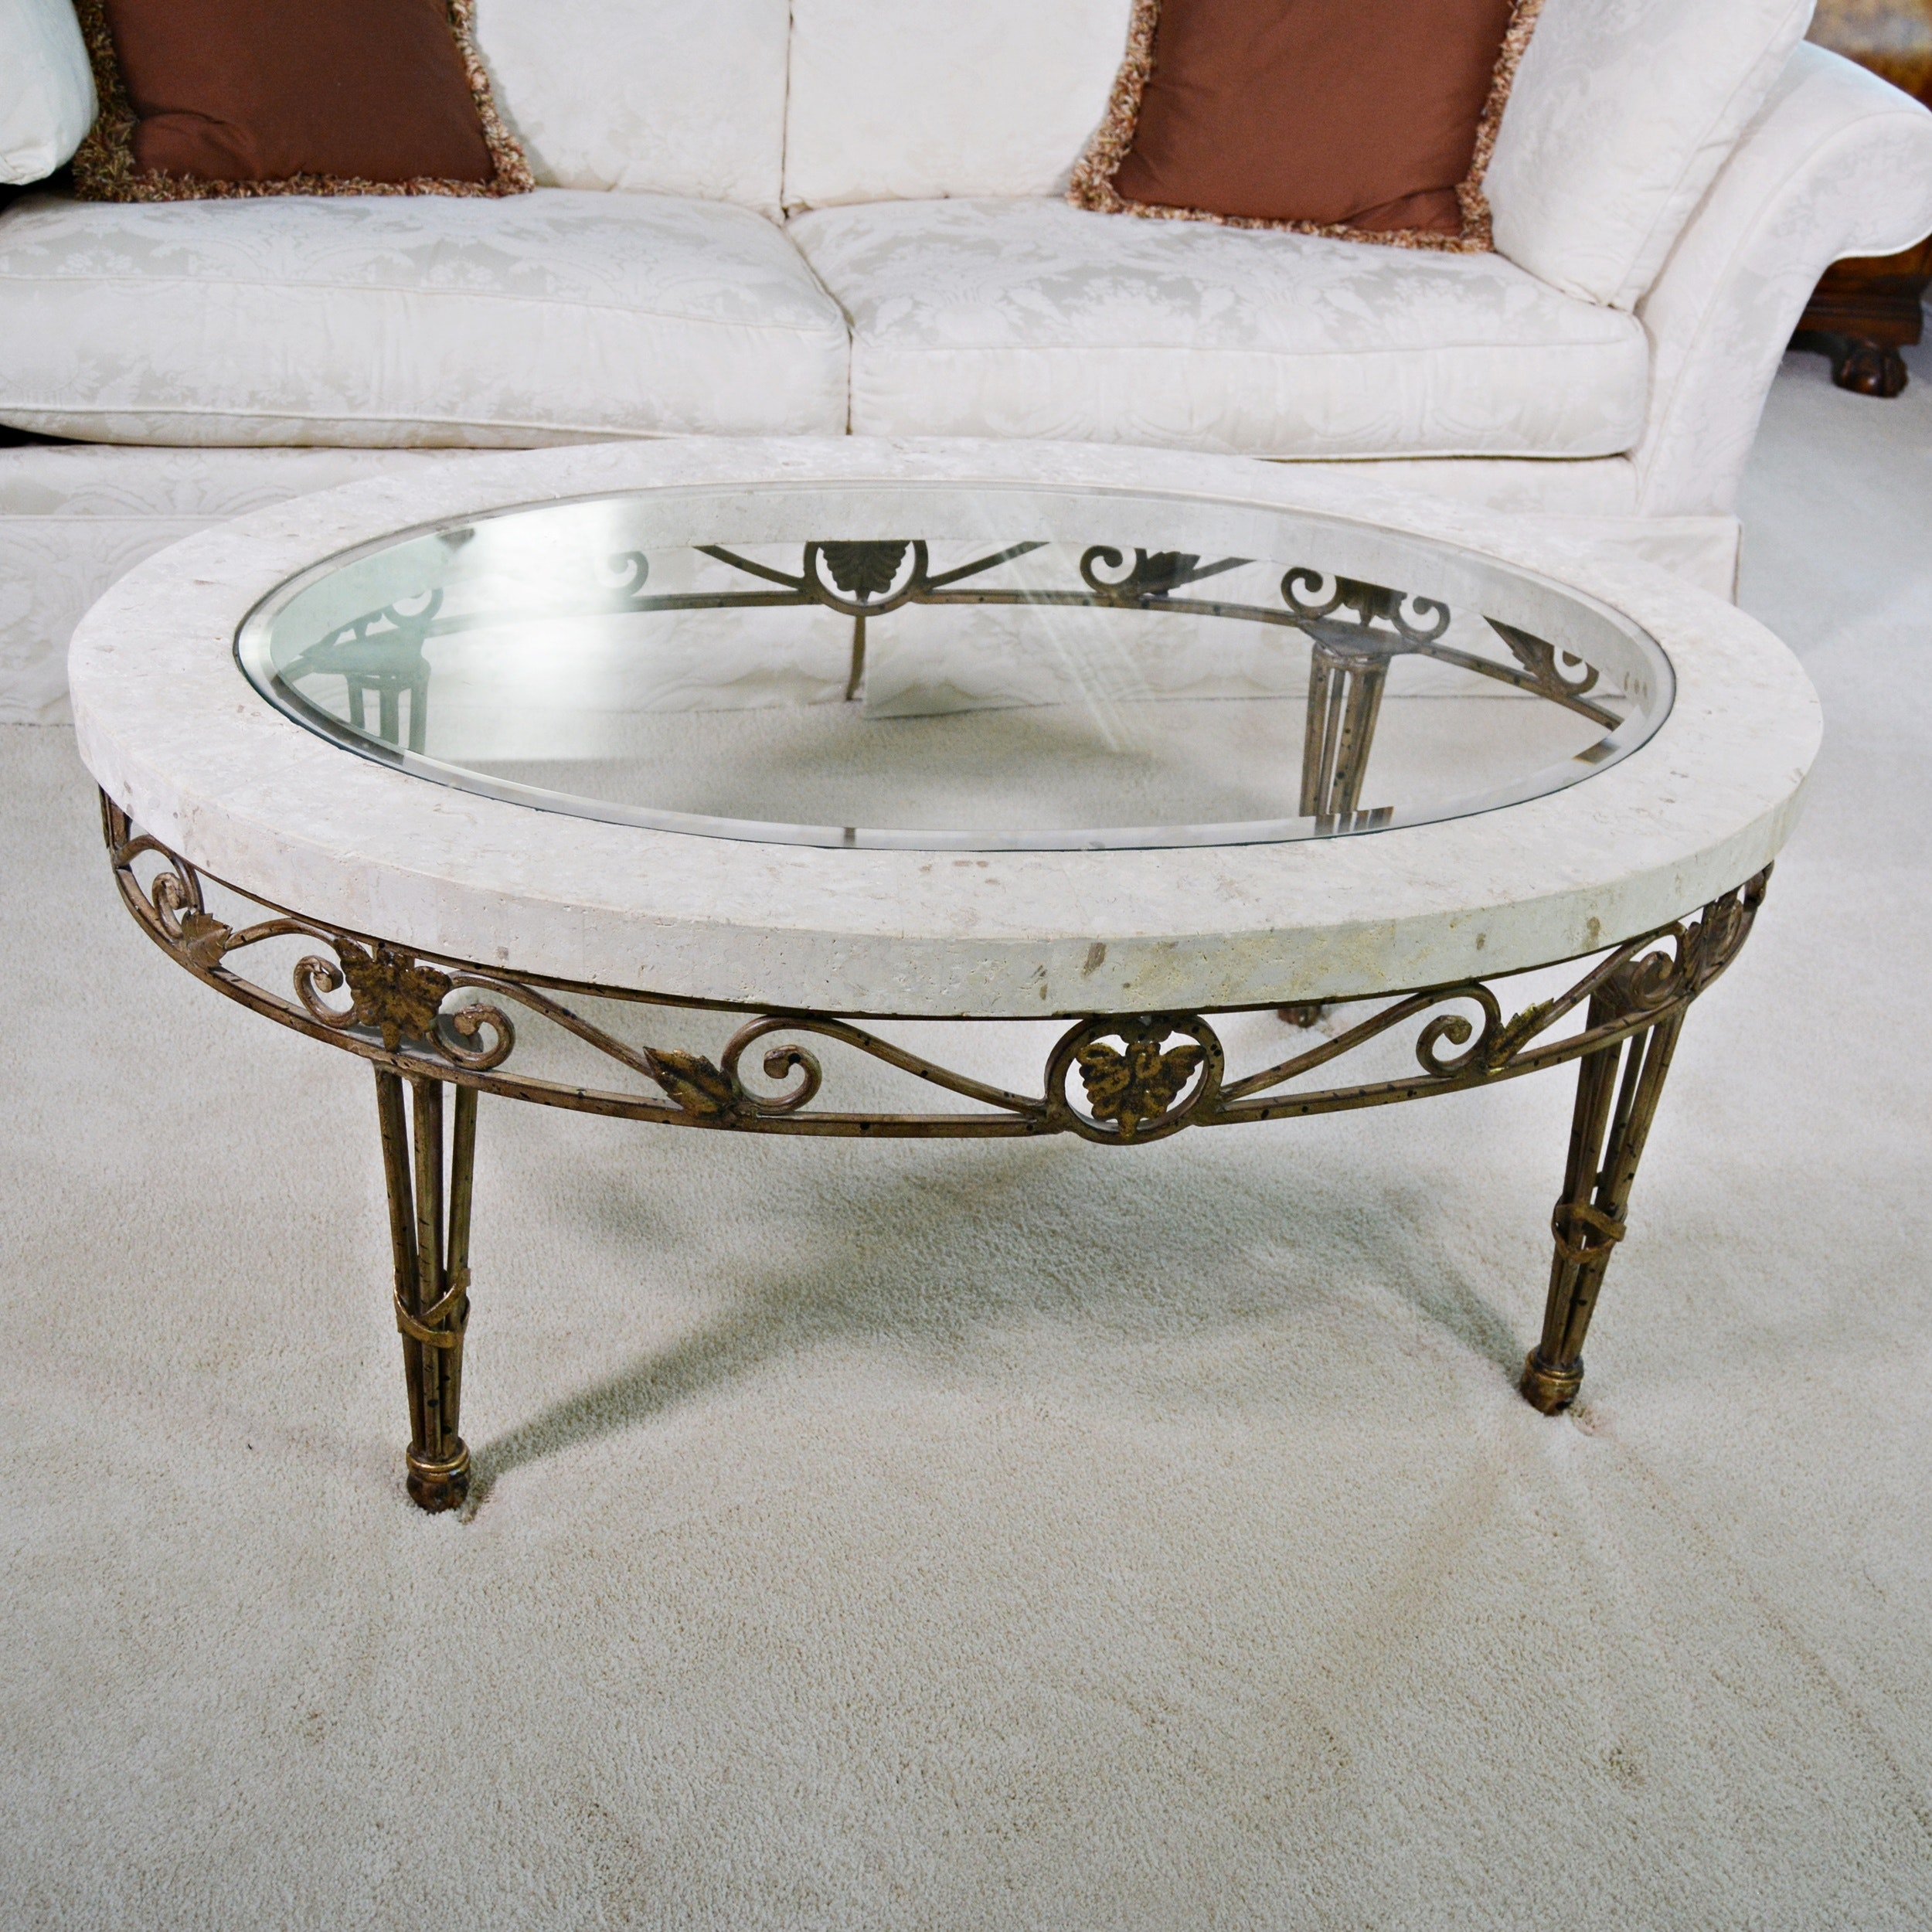 Glass, Stone and Metal Coffee Table